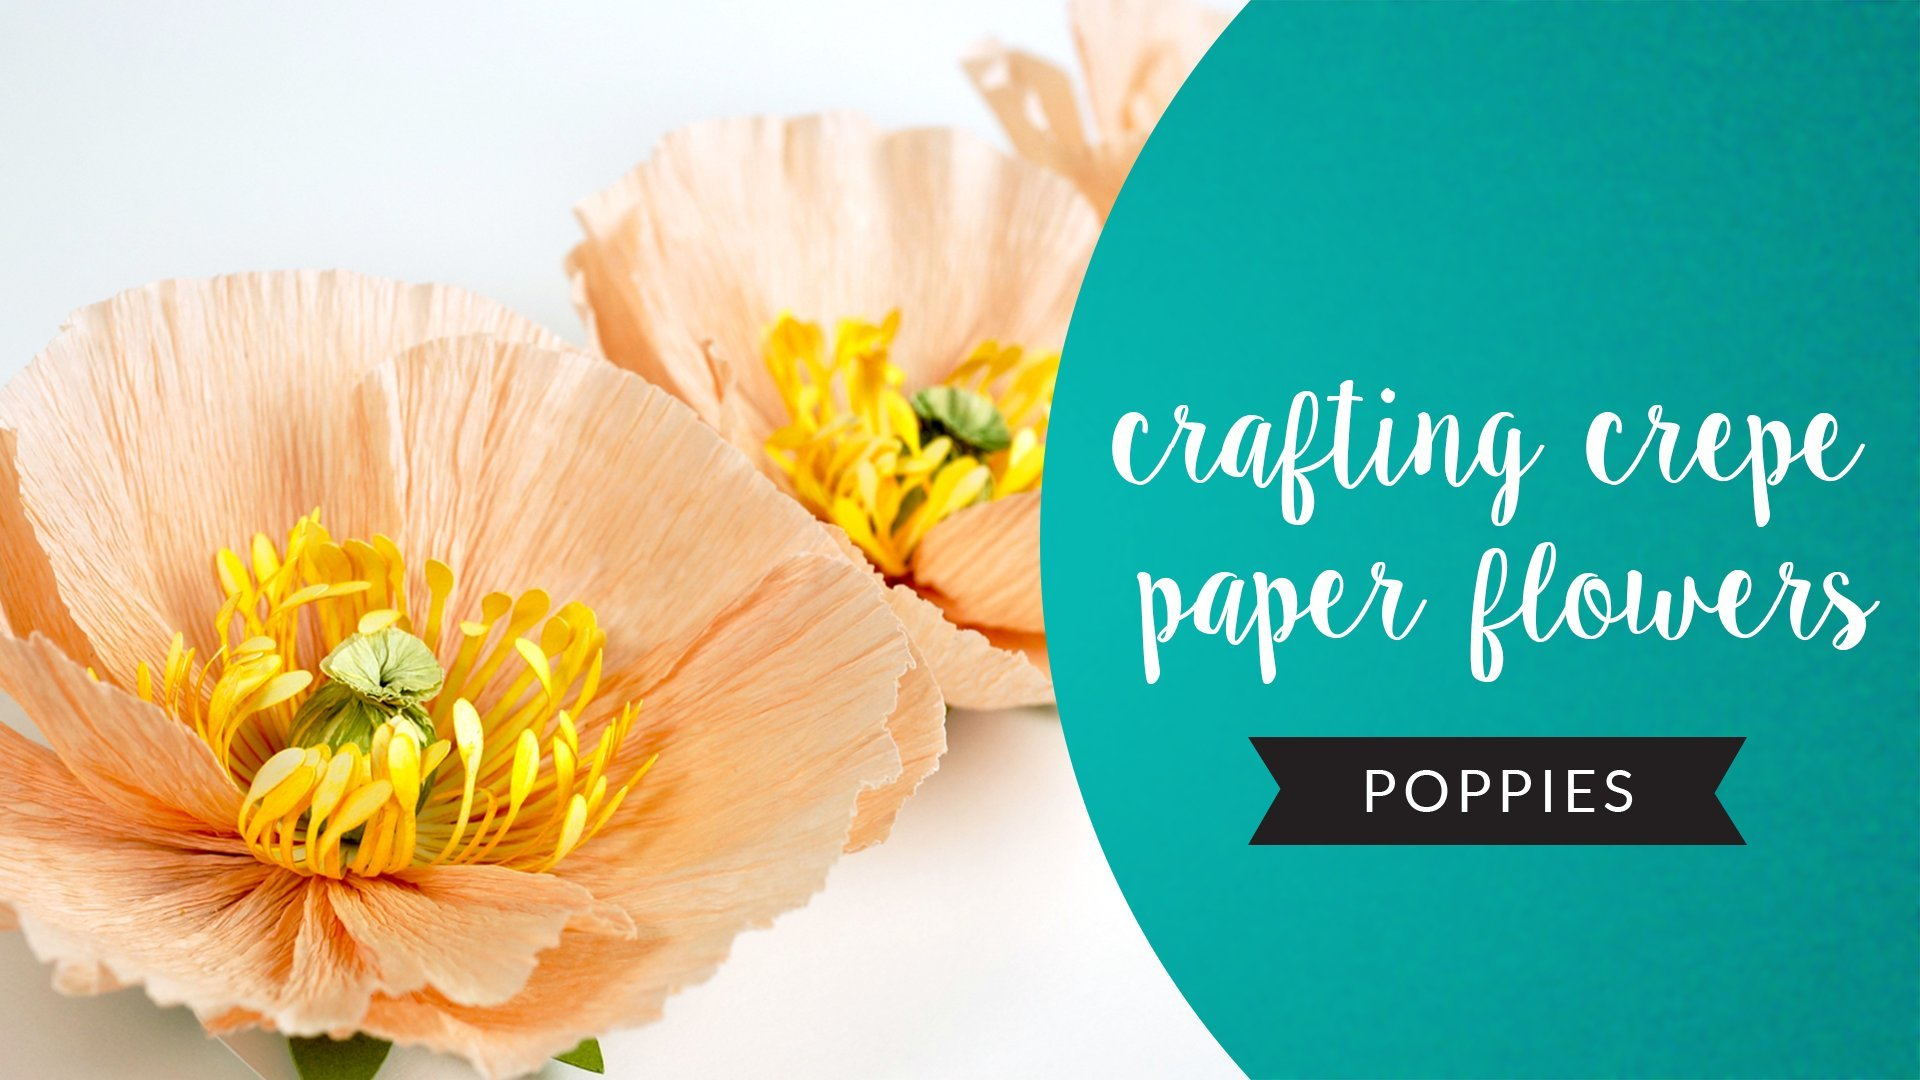 Crafting Crepe Paper Flowers Poppies Heather Grimstead Skillshare